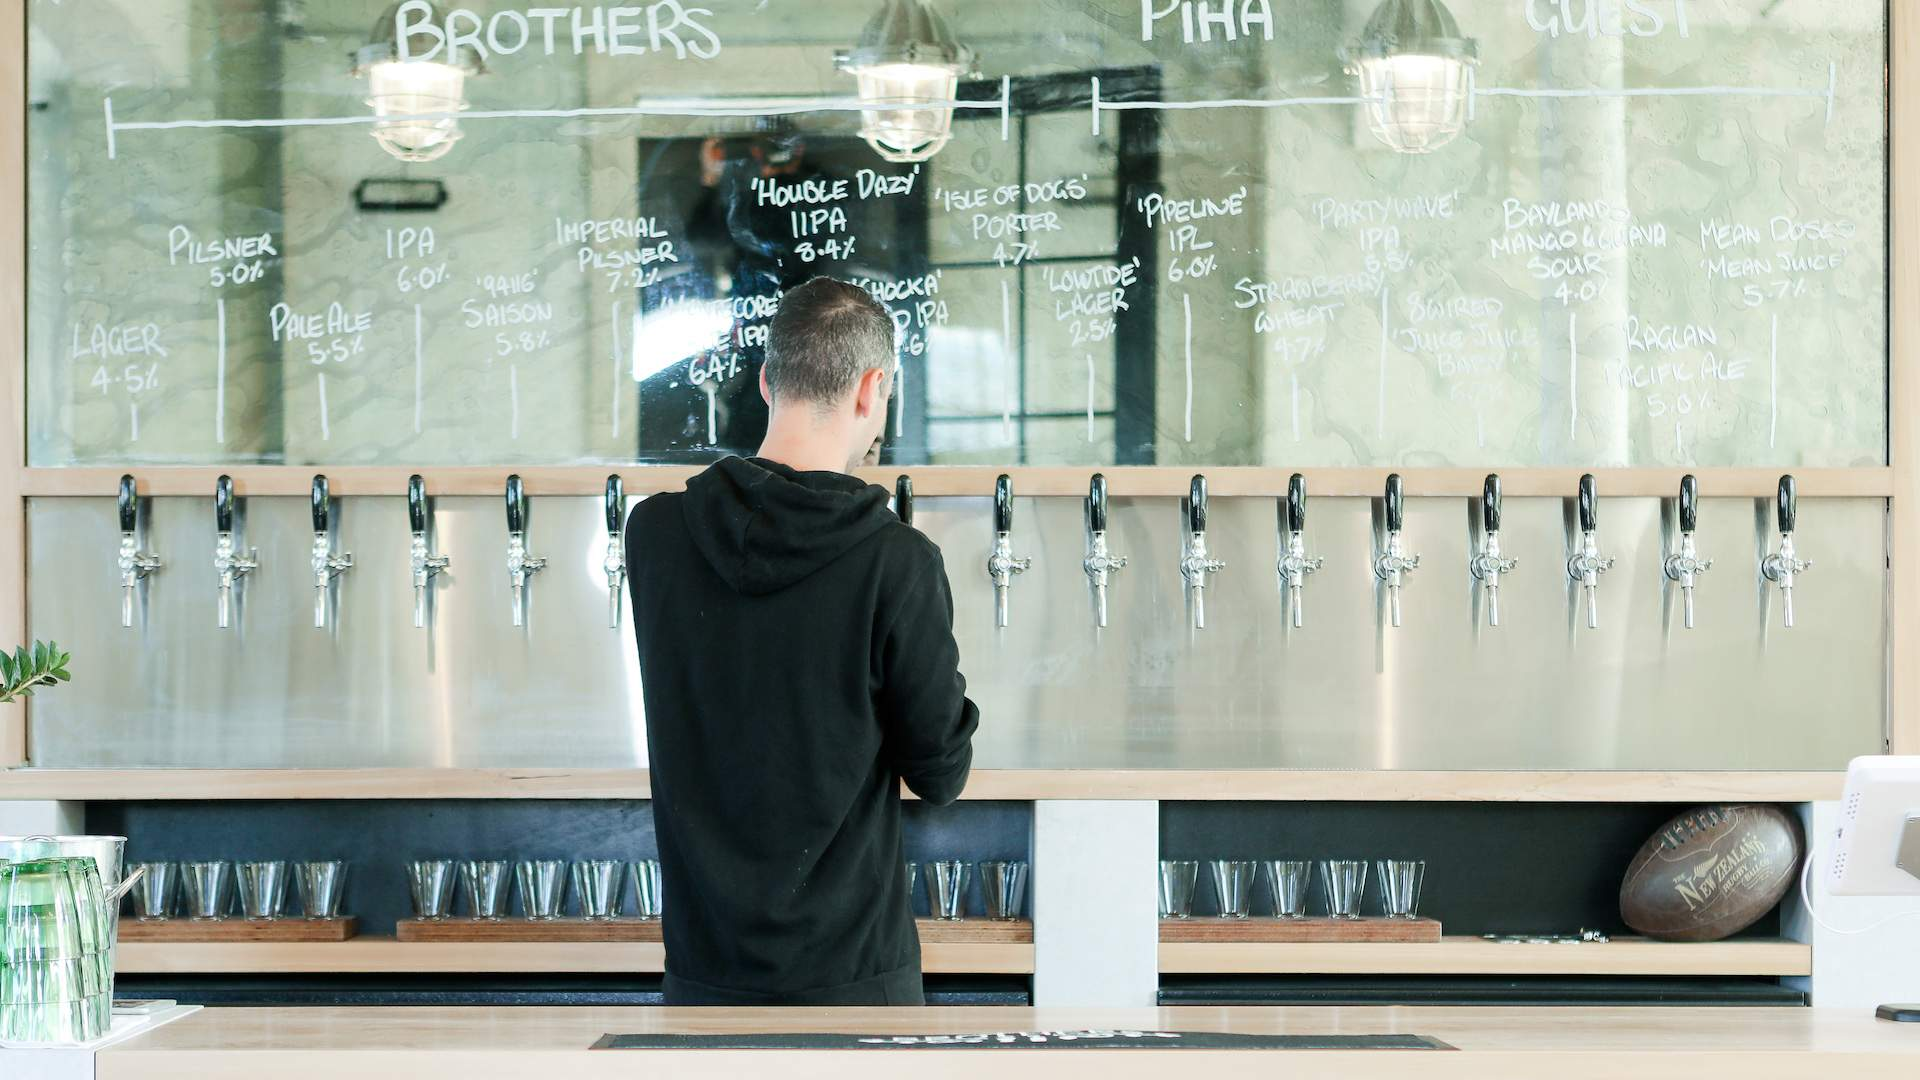 Brothers Beer Onehunga